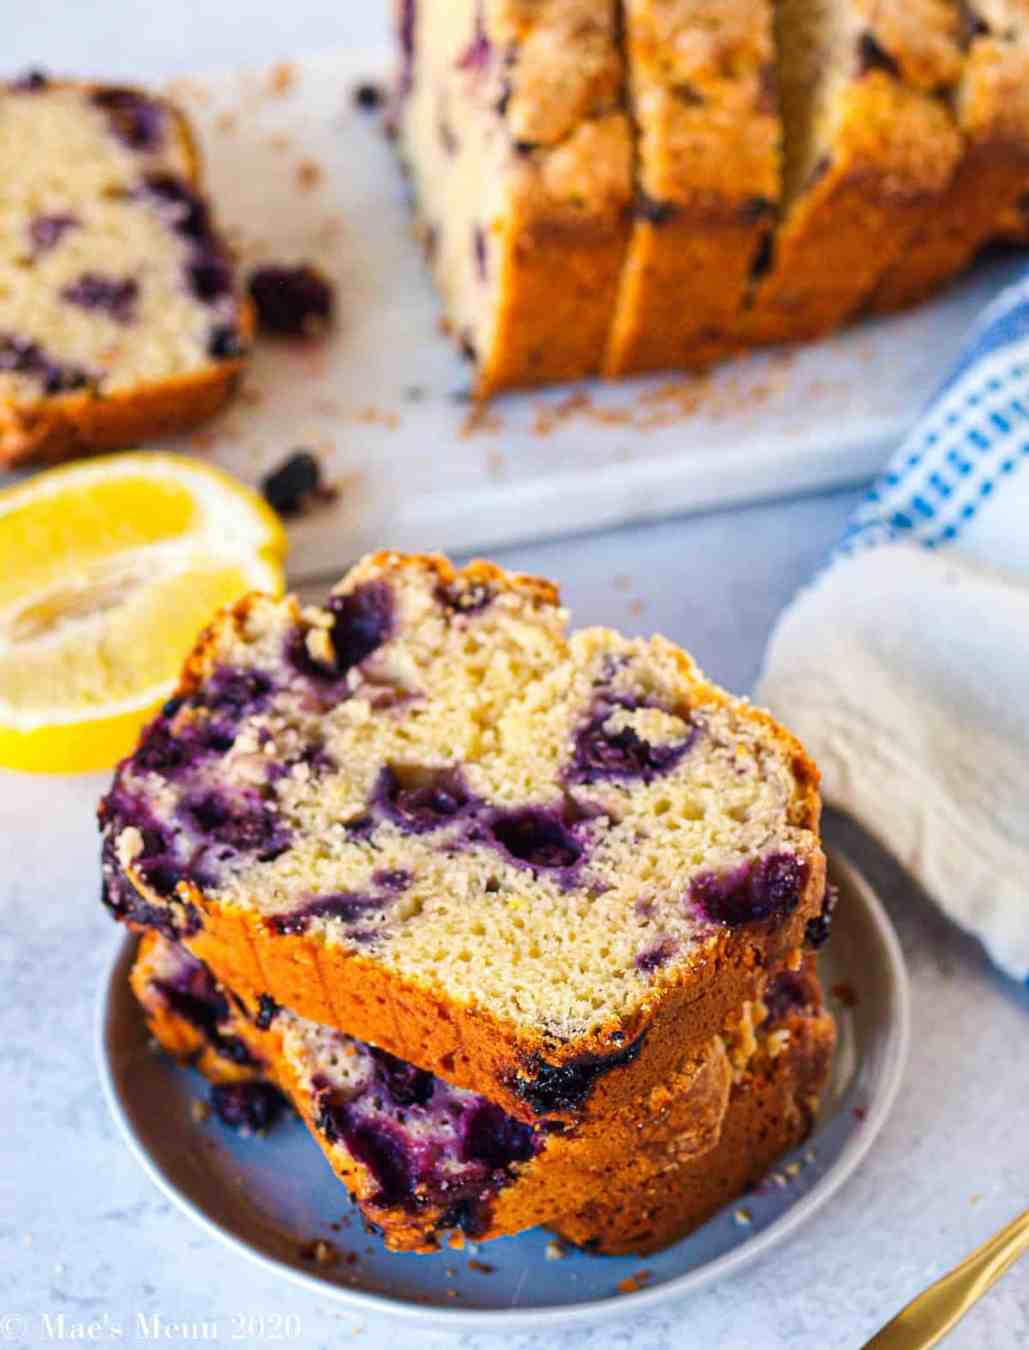 A small plate of lemon blueberry bread slices in front of a cutting board full of bread.